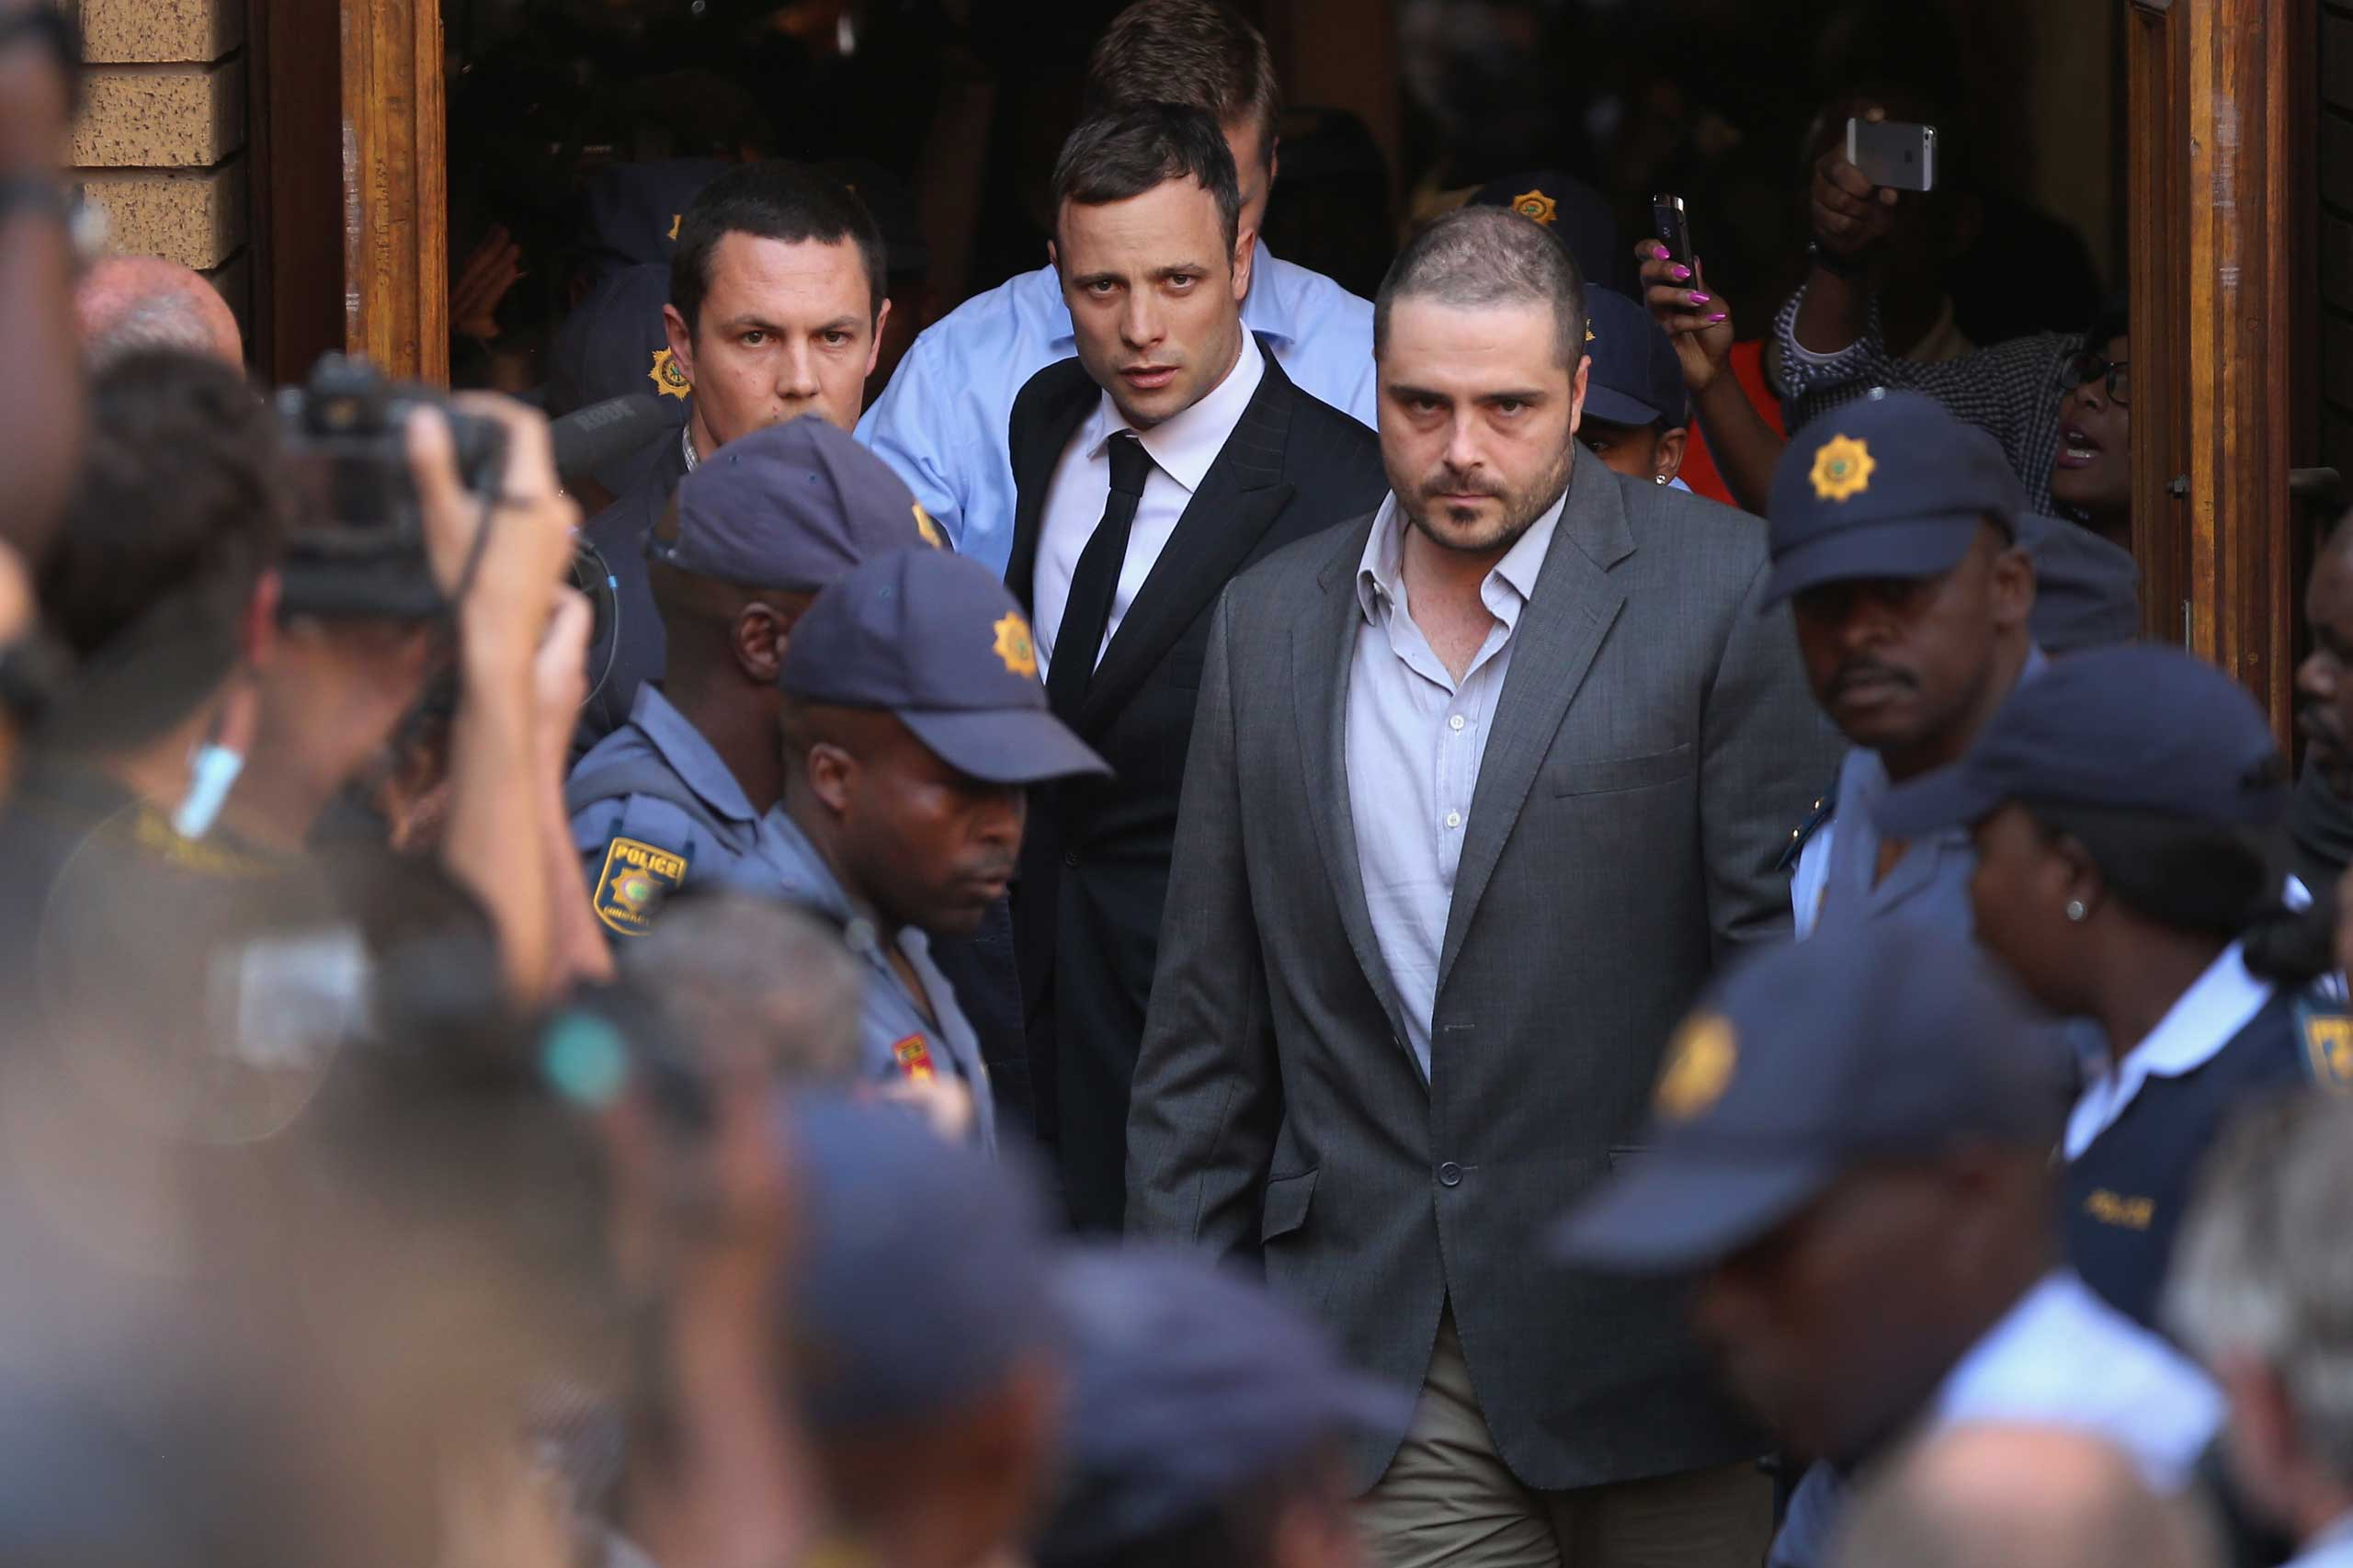 Oscar Pistorius leaves North Gauteng High Court in Pretoria, South Africa, on Sept. 11, 2014.